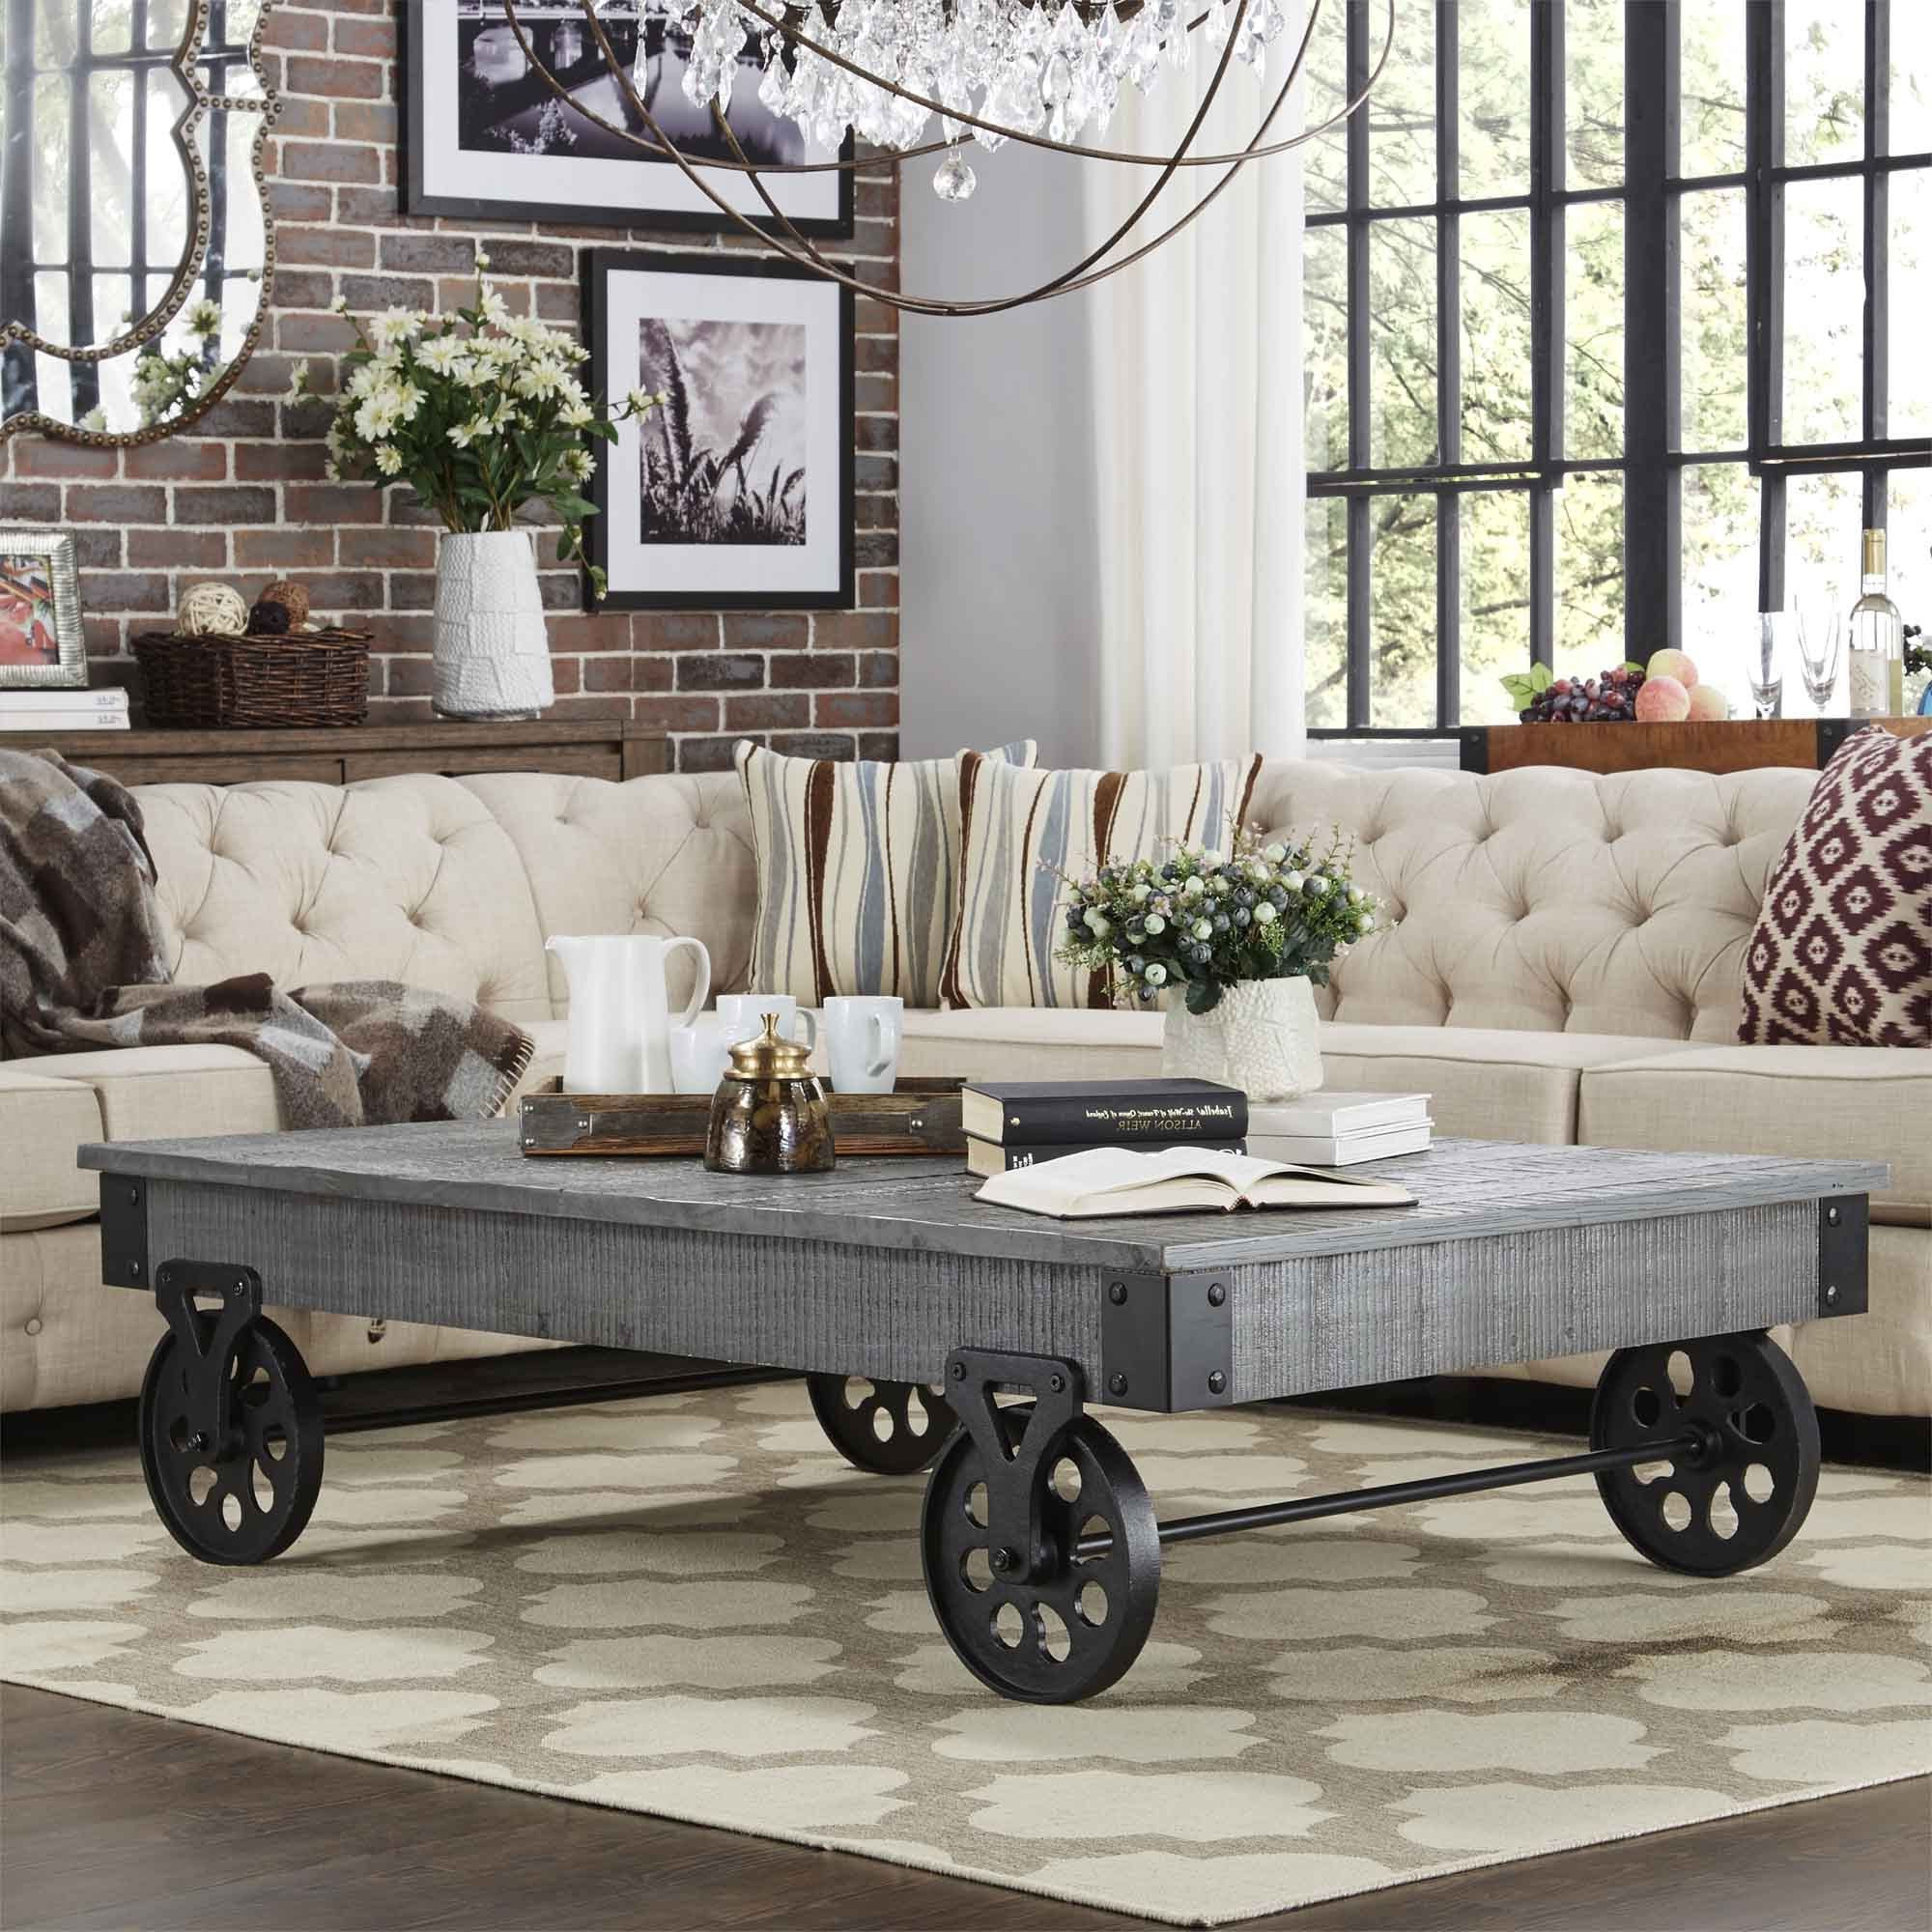 Tribecca Home Myra Vintage Industrial Modern Rustic 58 Inch With Famous Myra Vintage Industrial Modern Rustic 47 Inch Coffee Tables (View 19 of 20)